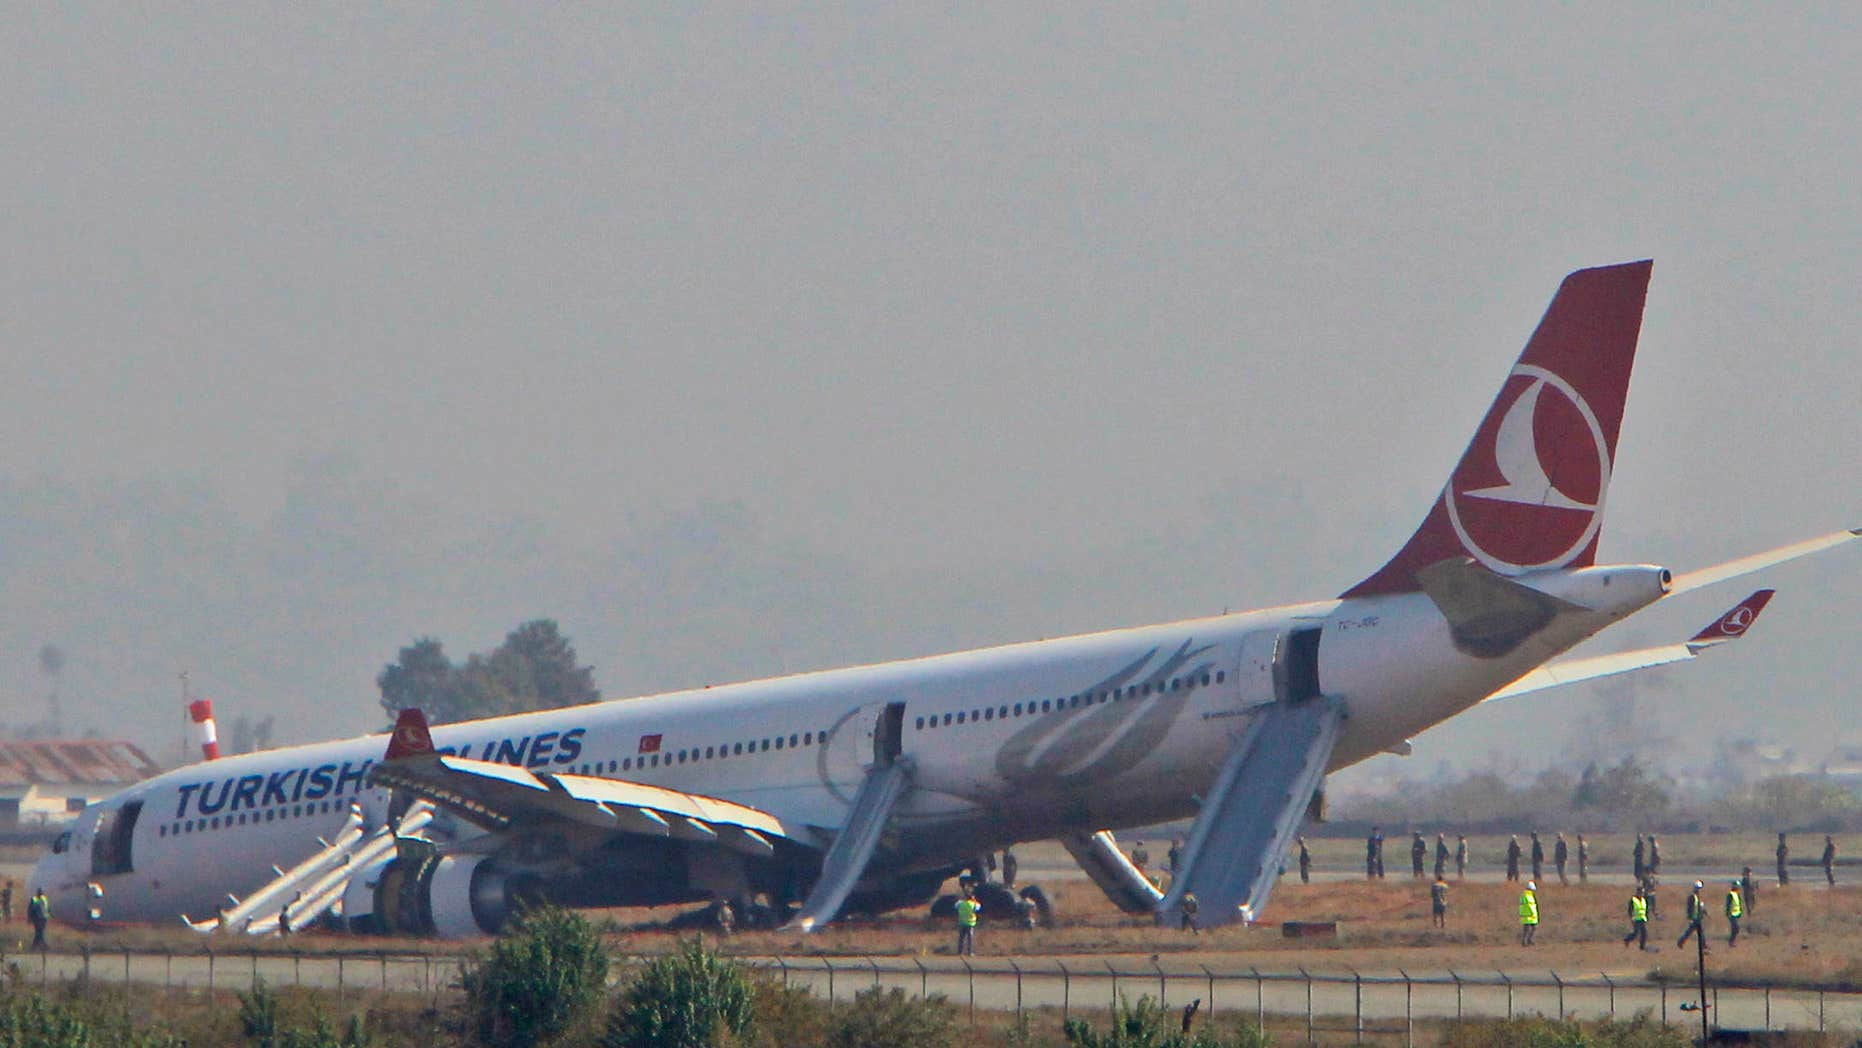 March 4, 2015: A Turkish Airlines jet is seen after it skidded off a slippery runway while landing in dense fog at Tribhuwan International Airport in Kathmandu, Nepal.